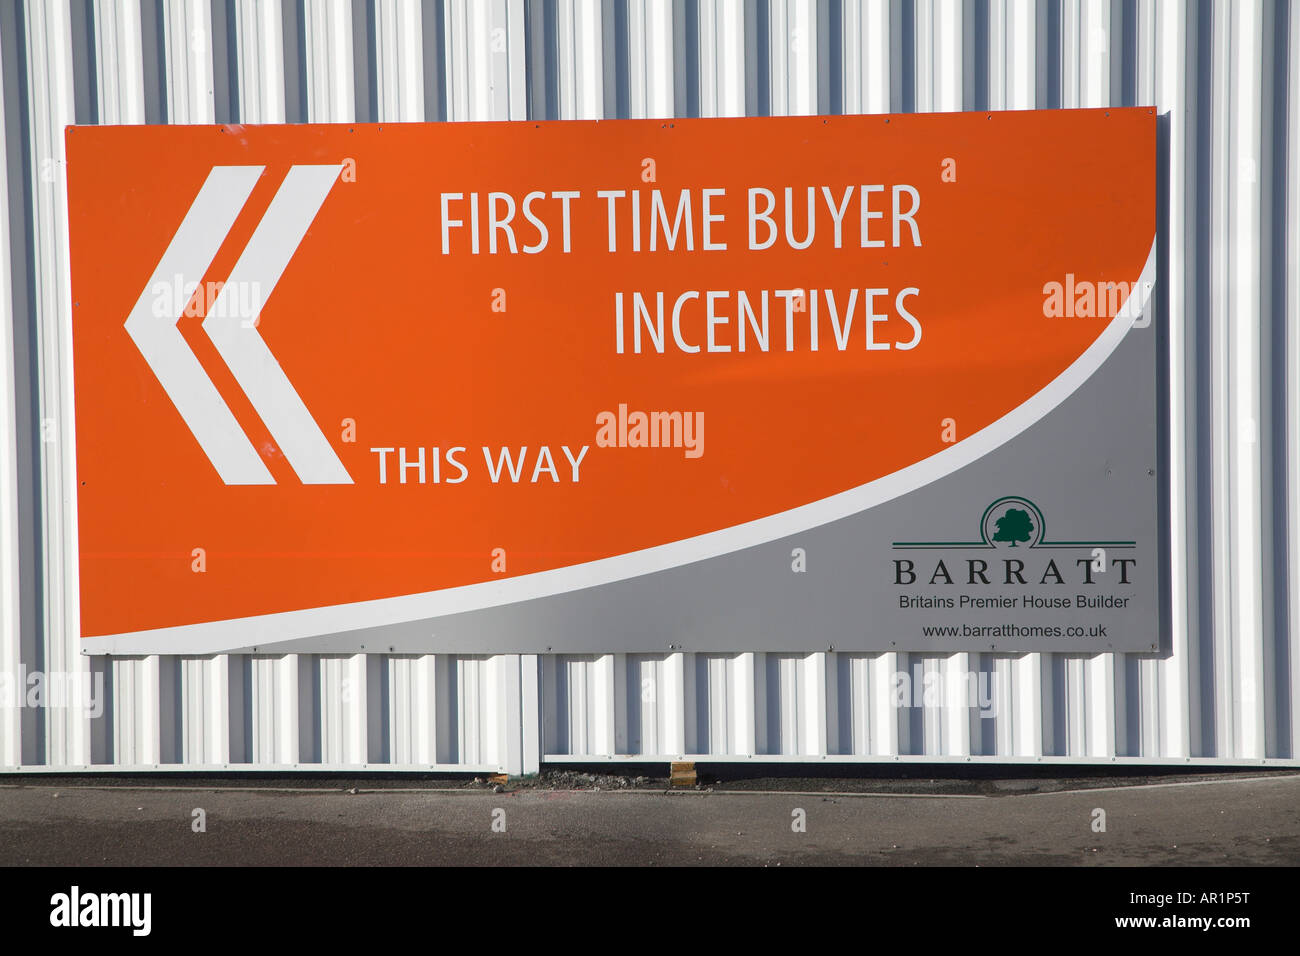 Barratt Homes sign advertisng First Time Buyer incentives - Stock Image